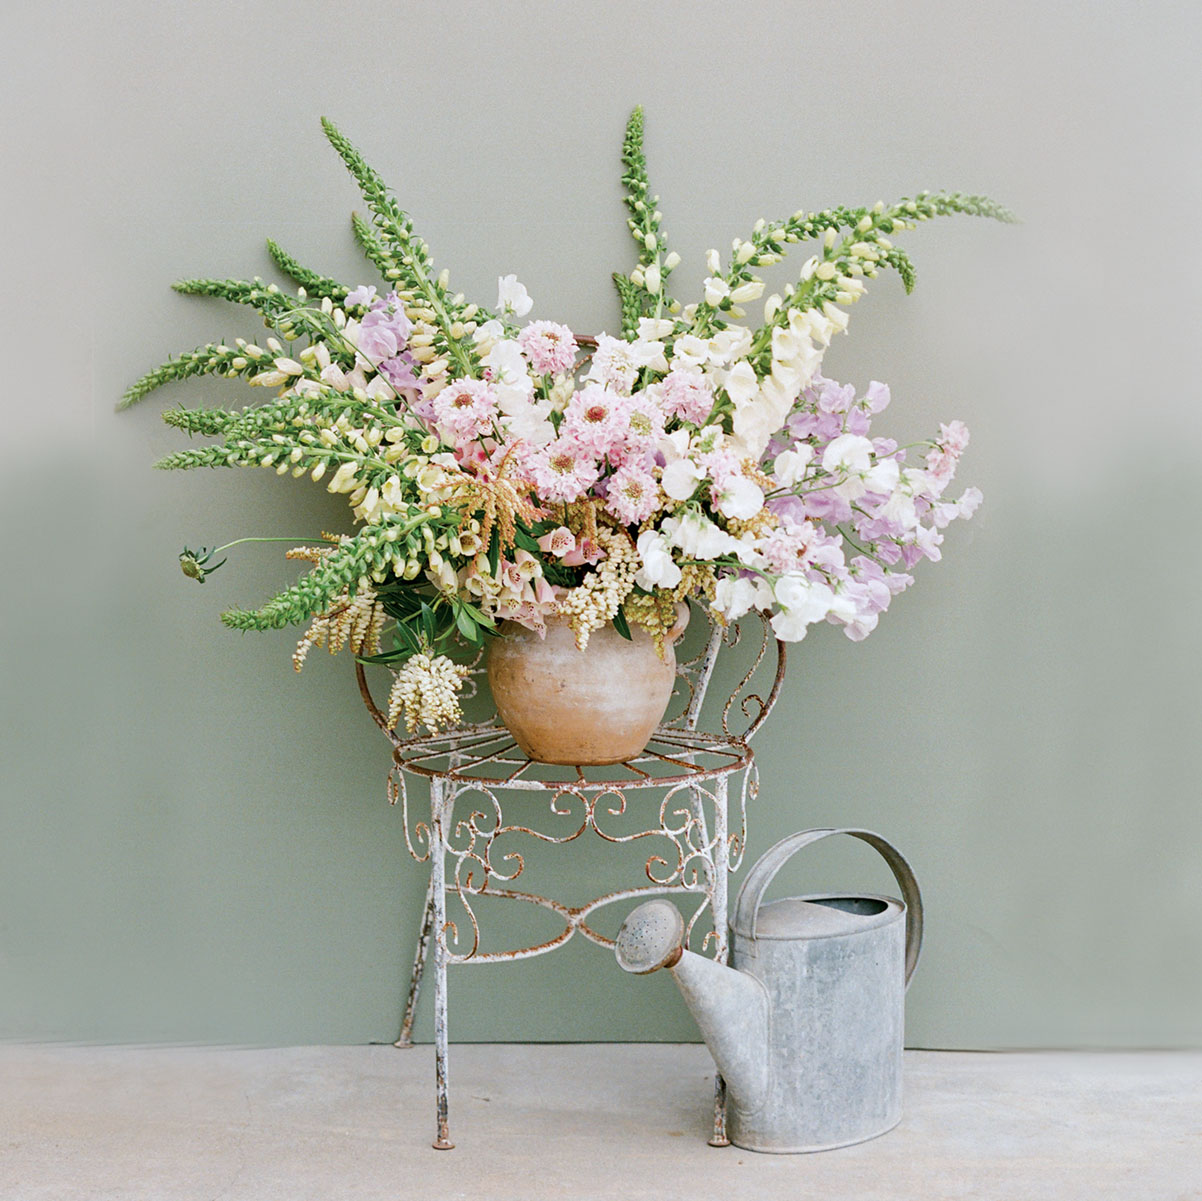 large summer floral arrangement with pastel pinks, purples, white and green, designed by Kate Holt in a clay vessel, displayed on an antique metal garden chair beside a metal watering can, against a pale gray-green wall